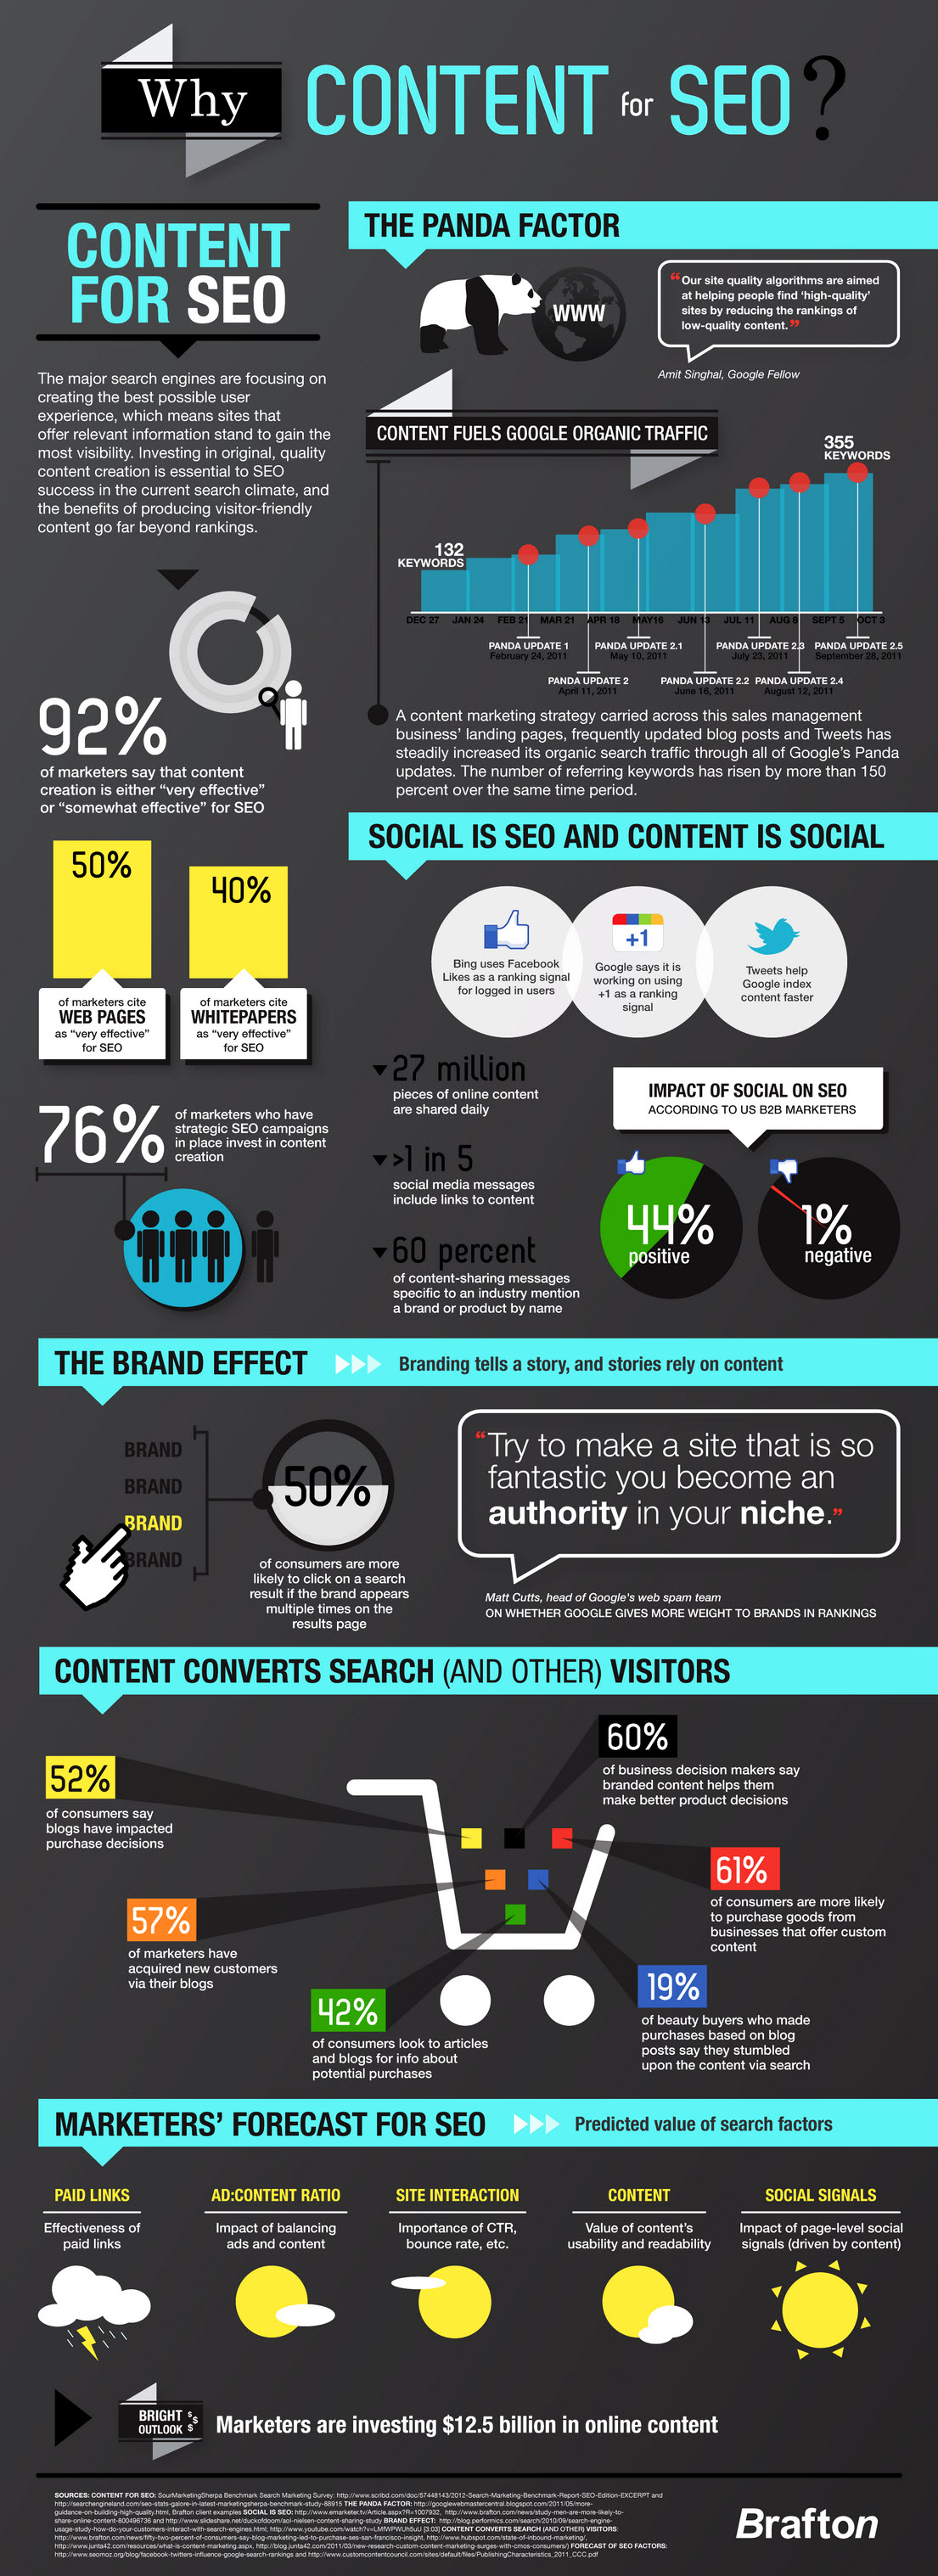 5 Cool Content Marketing Infographics You Shouldn't Miss